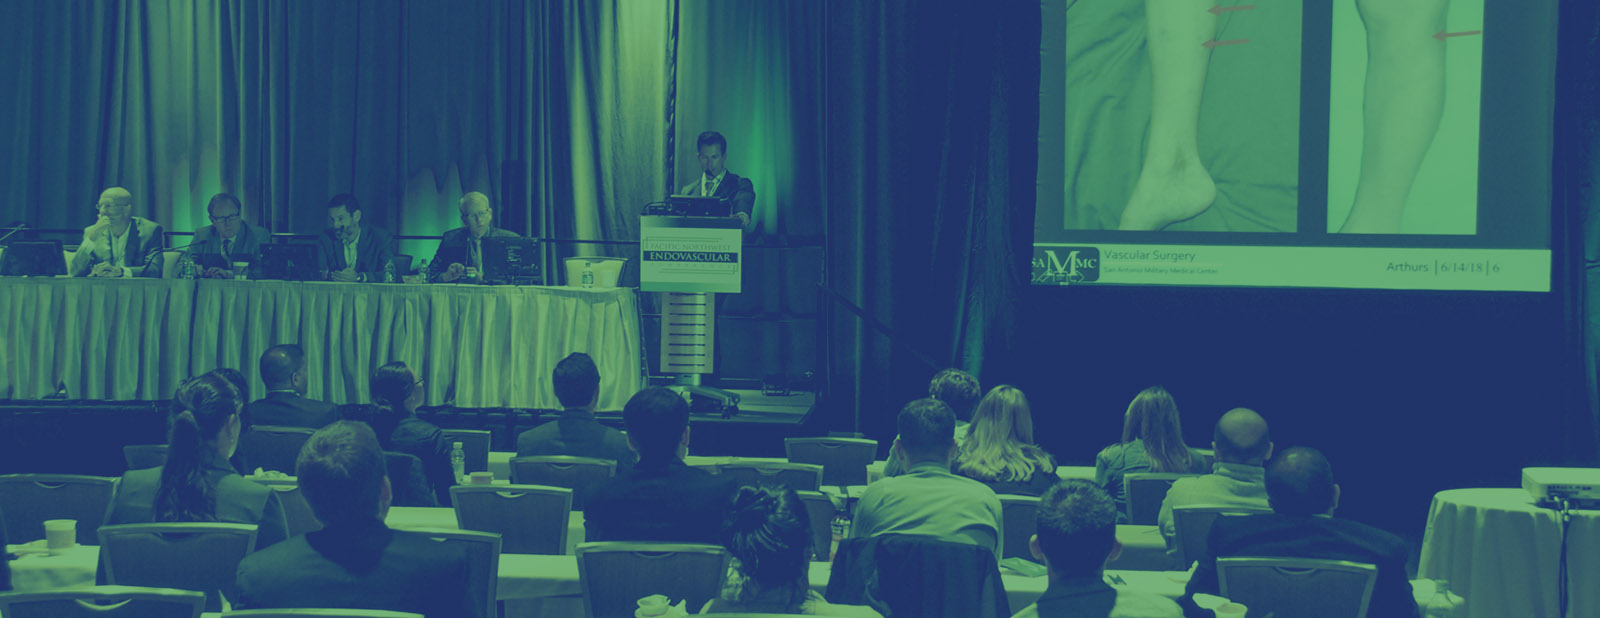 Pacific Northwest Endovascular Conference | Program